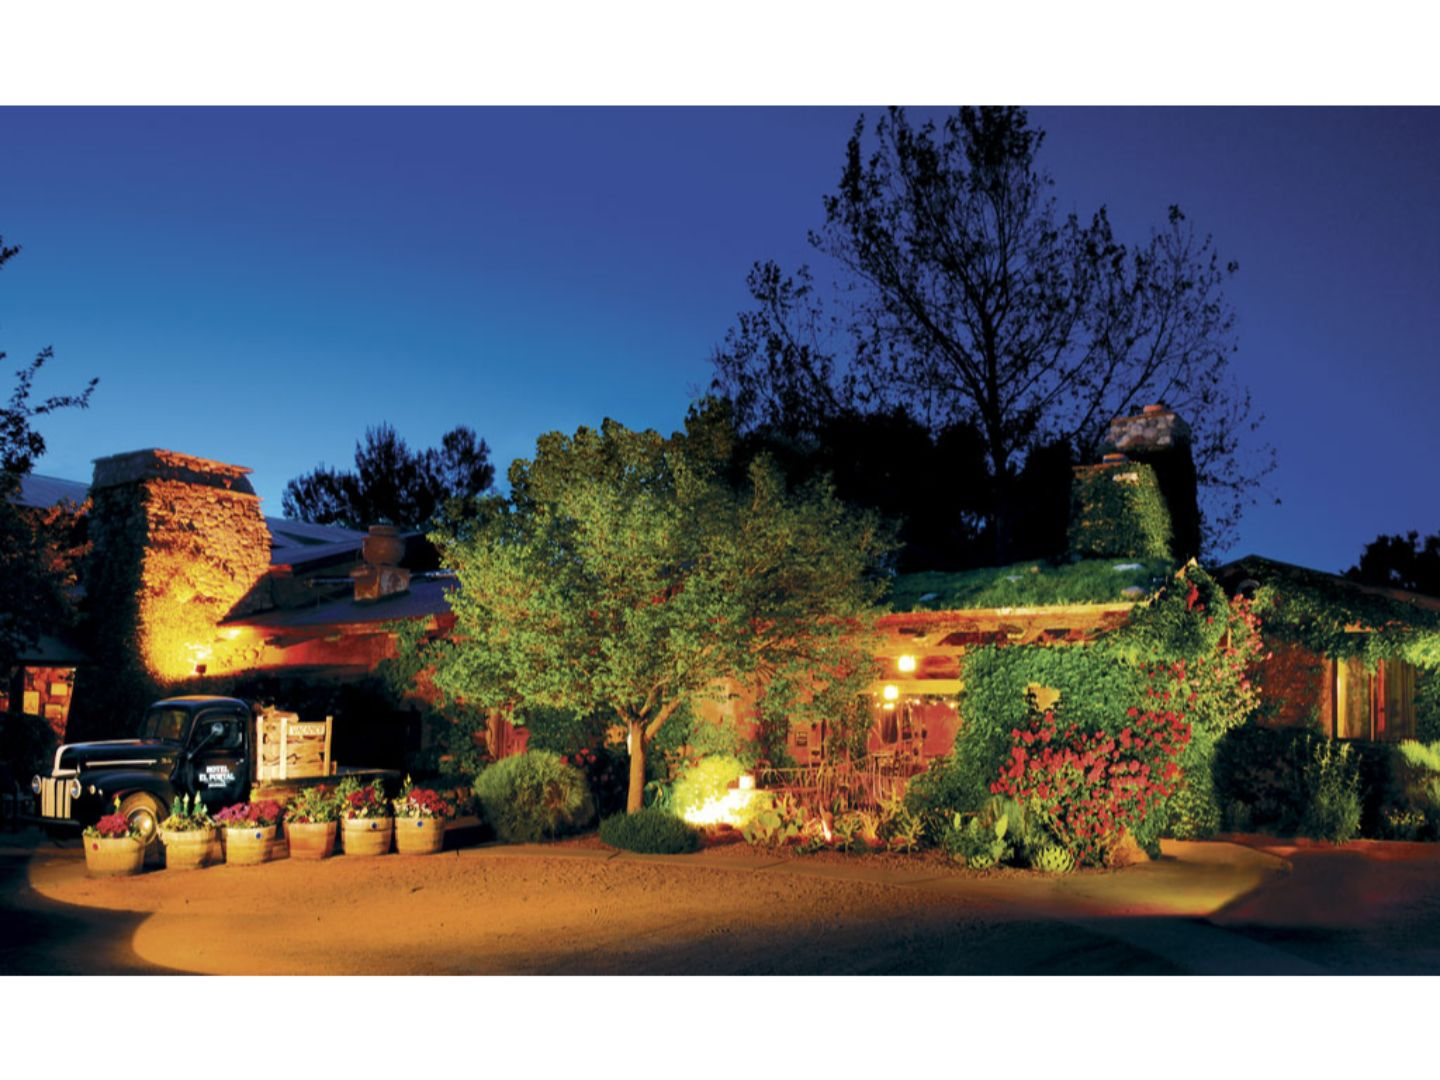 A house with trees in the background at El Portal Sedona Hotel.